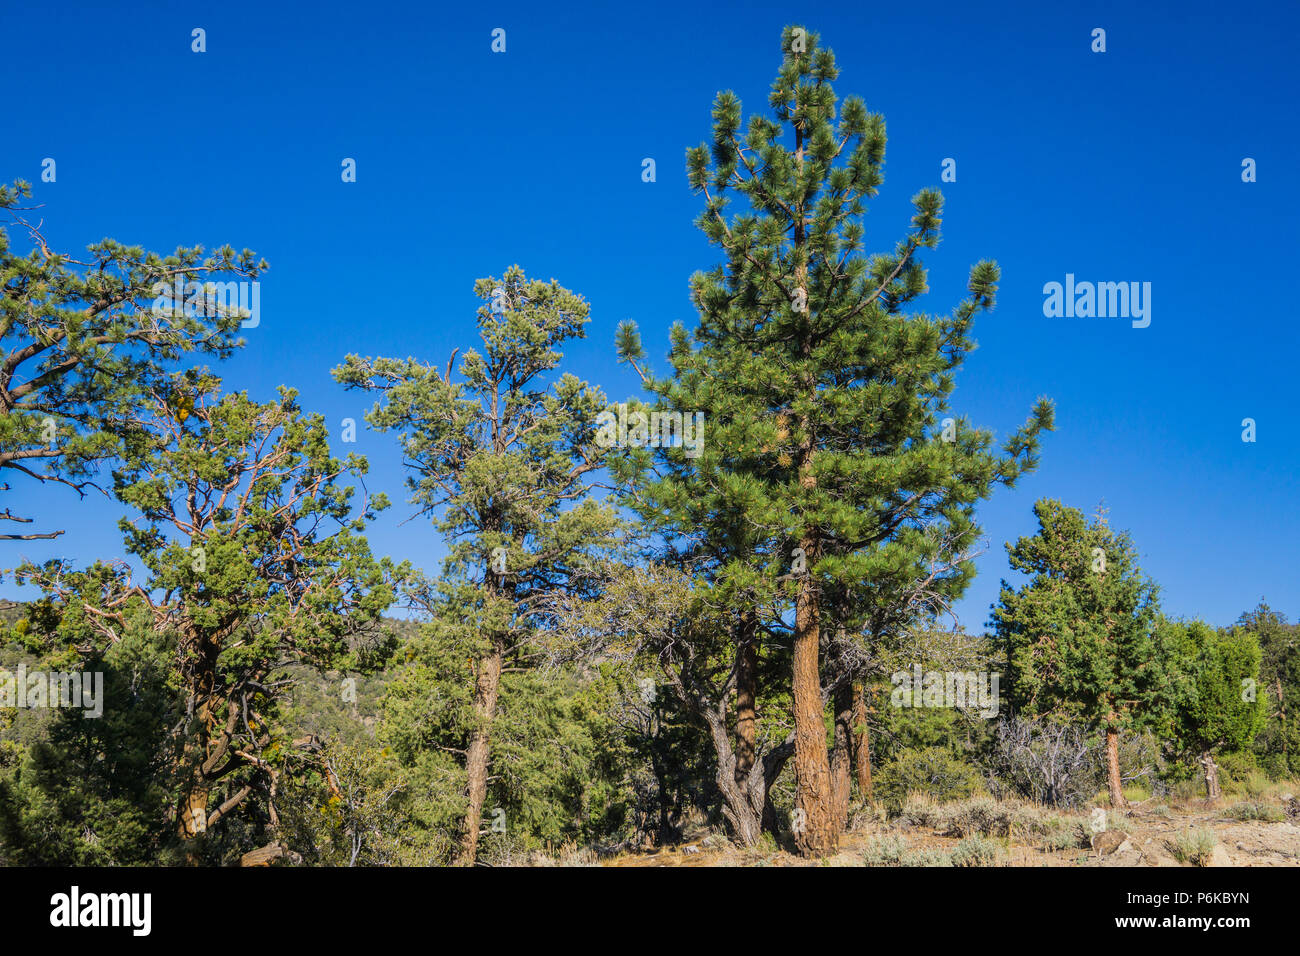 Line of evergreen trees in the mountains of southern California overlooking Los Angeles and San Bernadino. - Stock Image